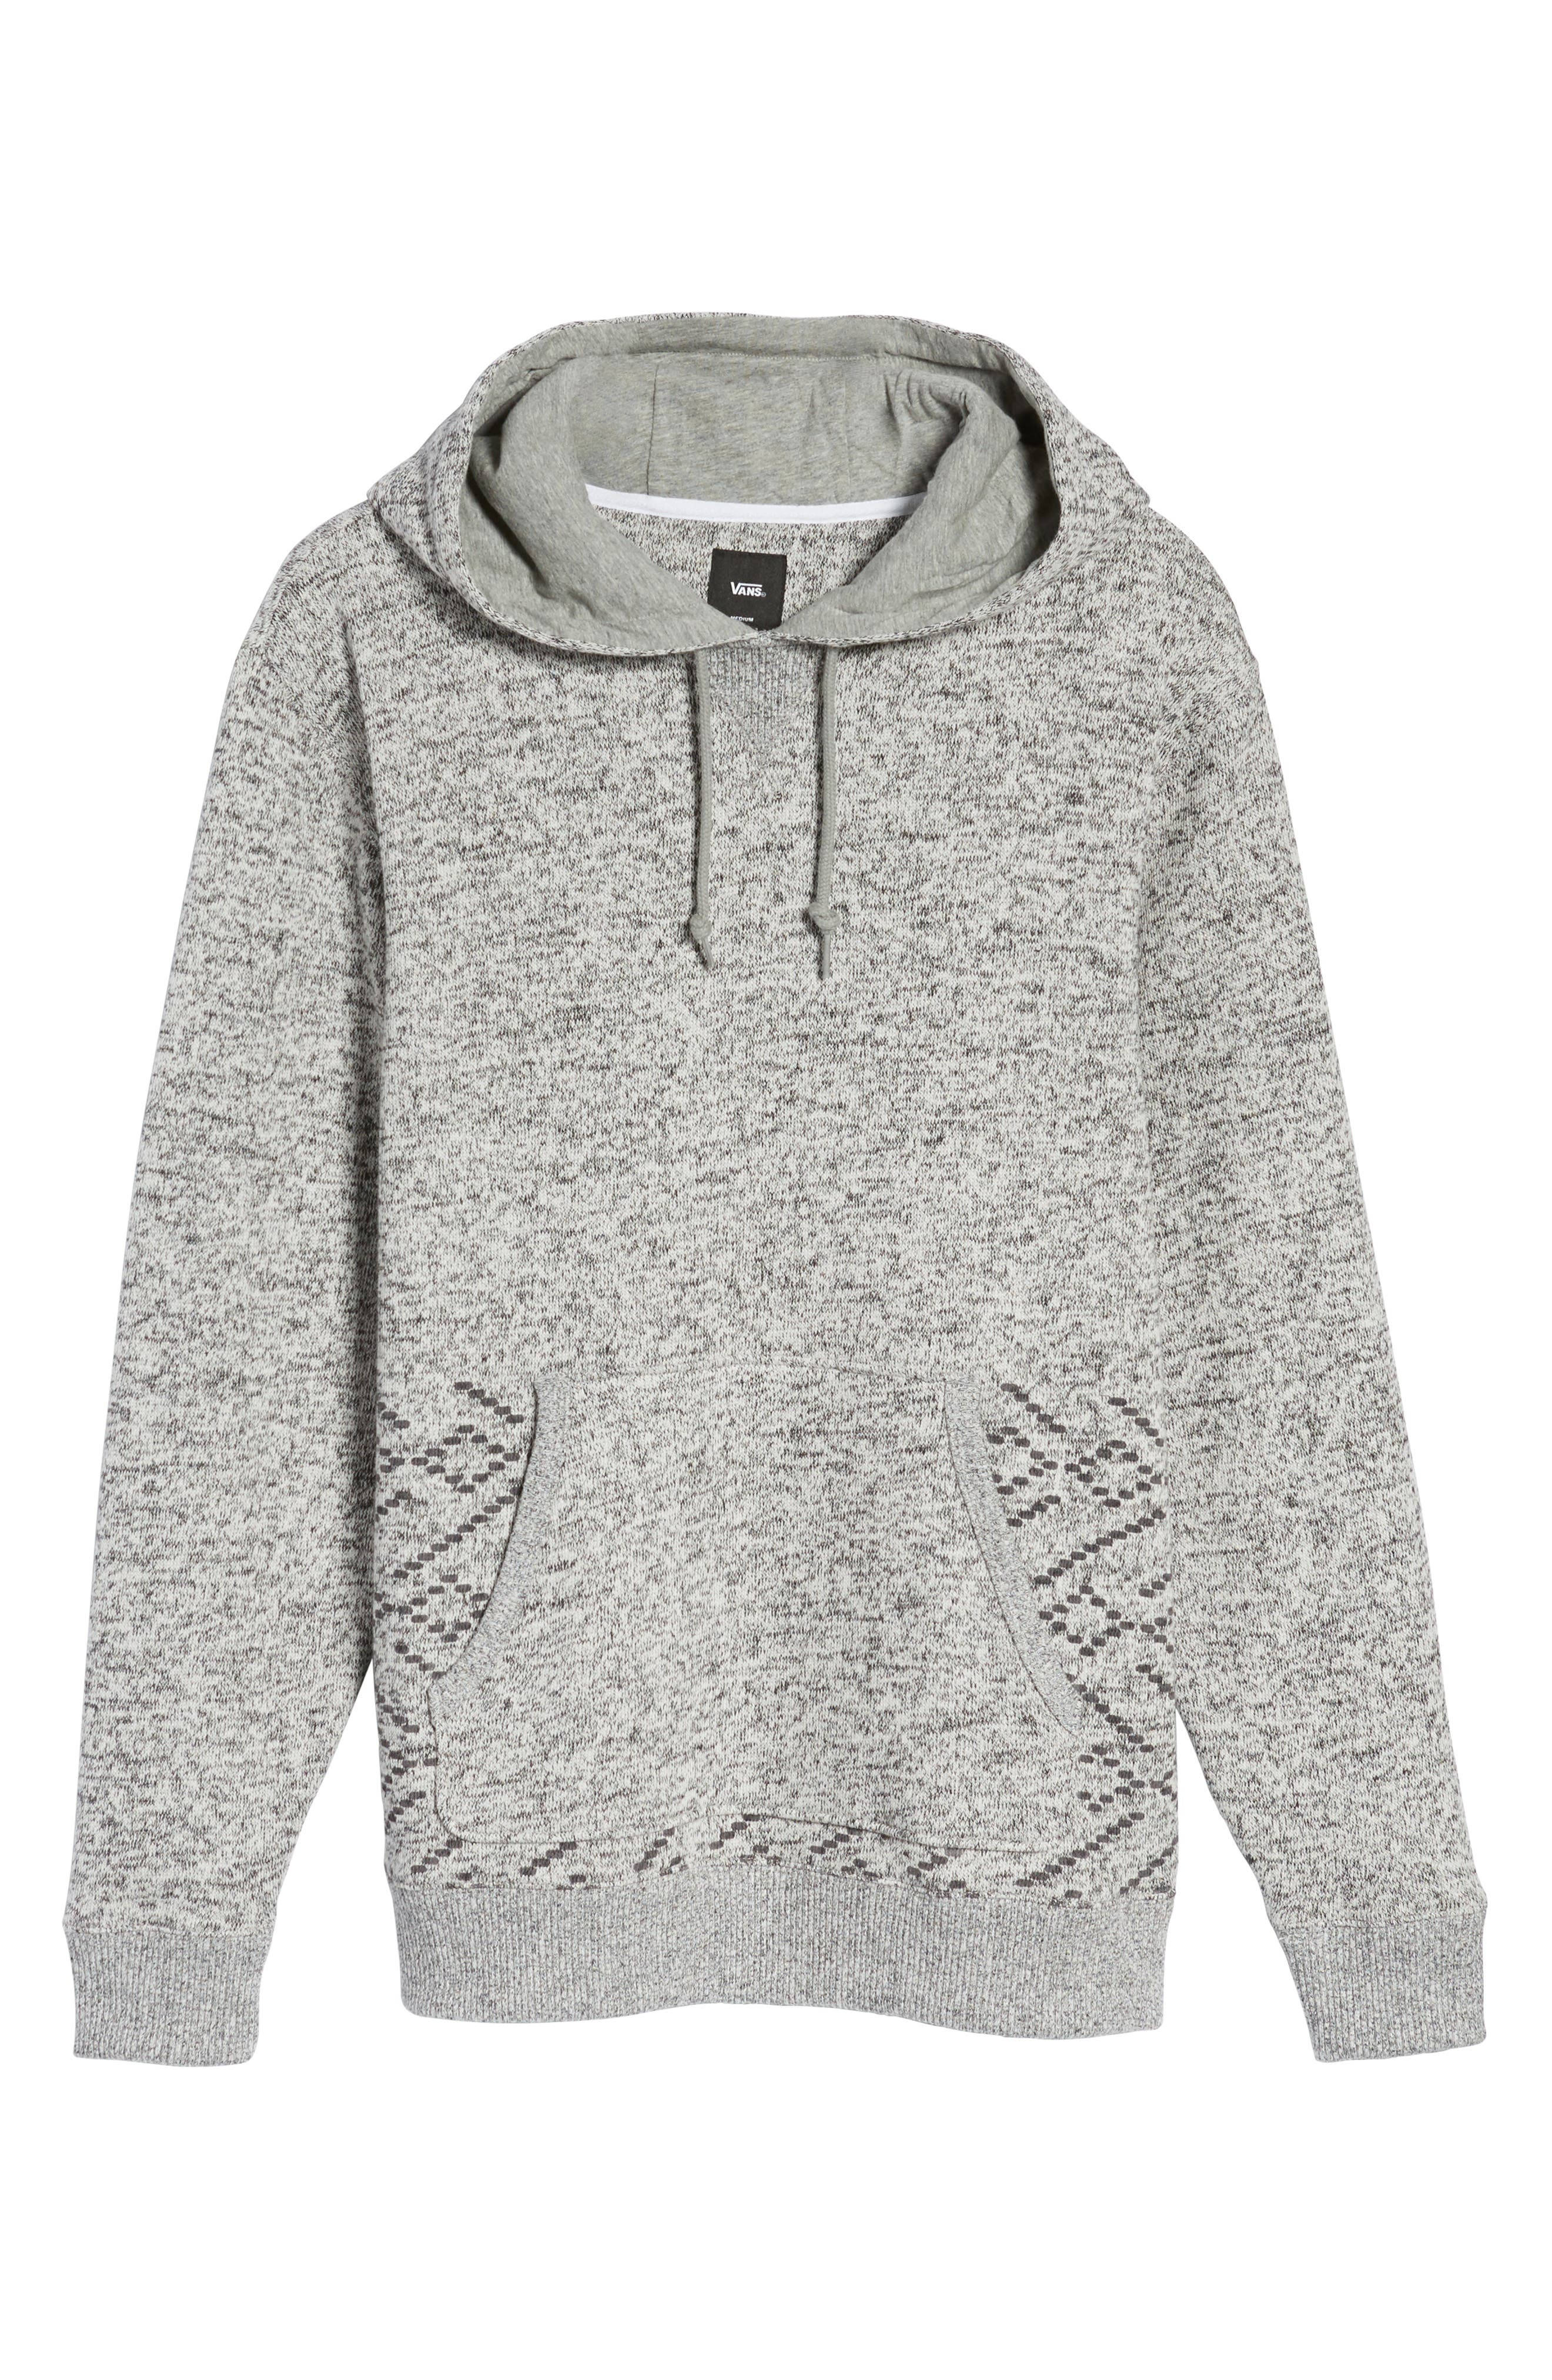 Brookstone Geo Print Hoodie,                             Alternate thumbnail 6, color,                             020